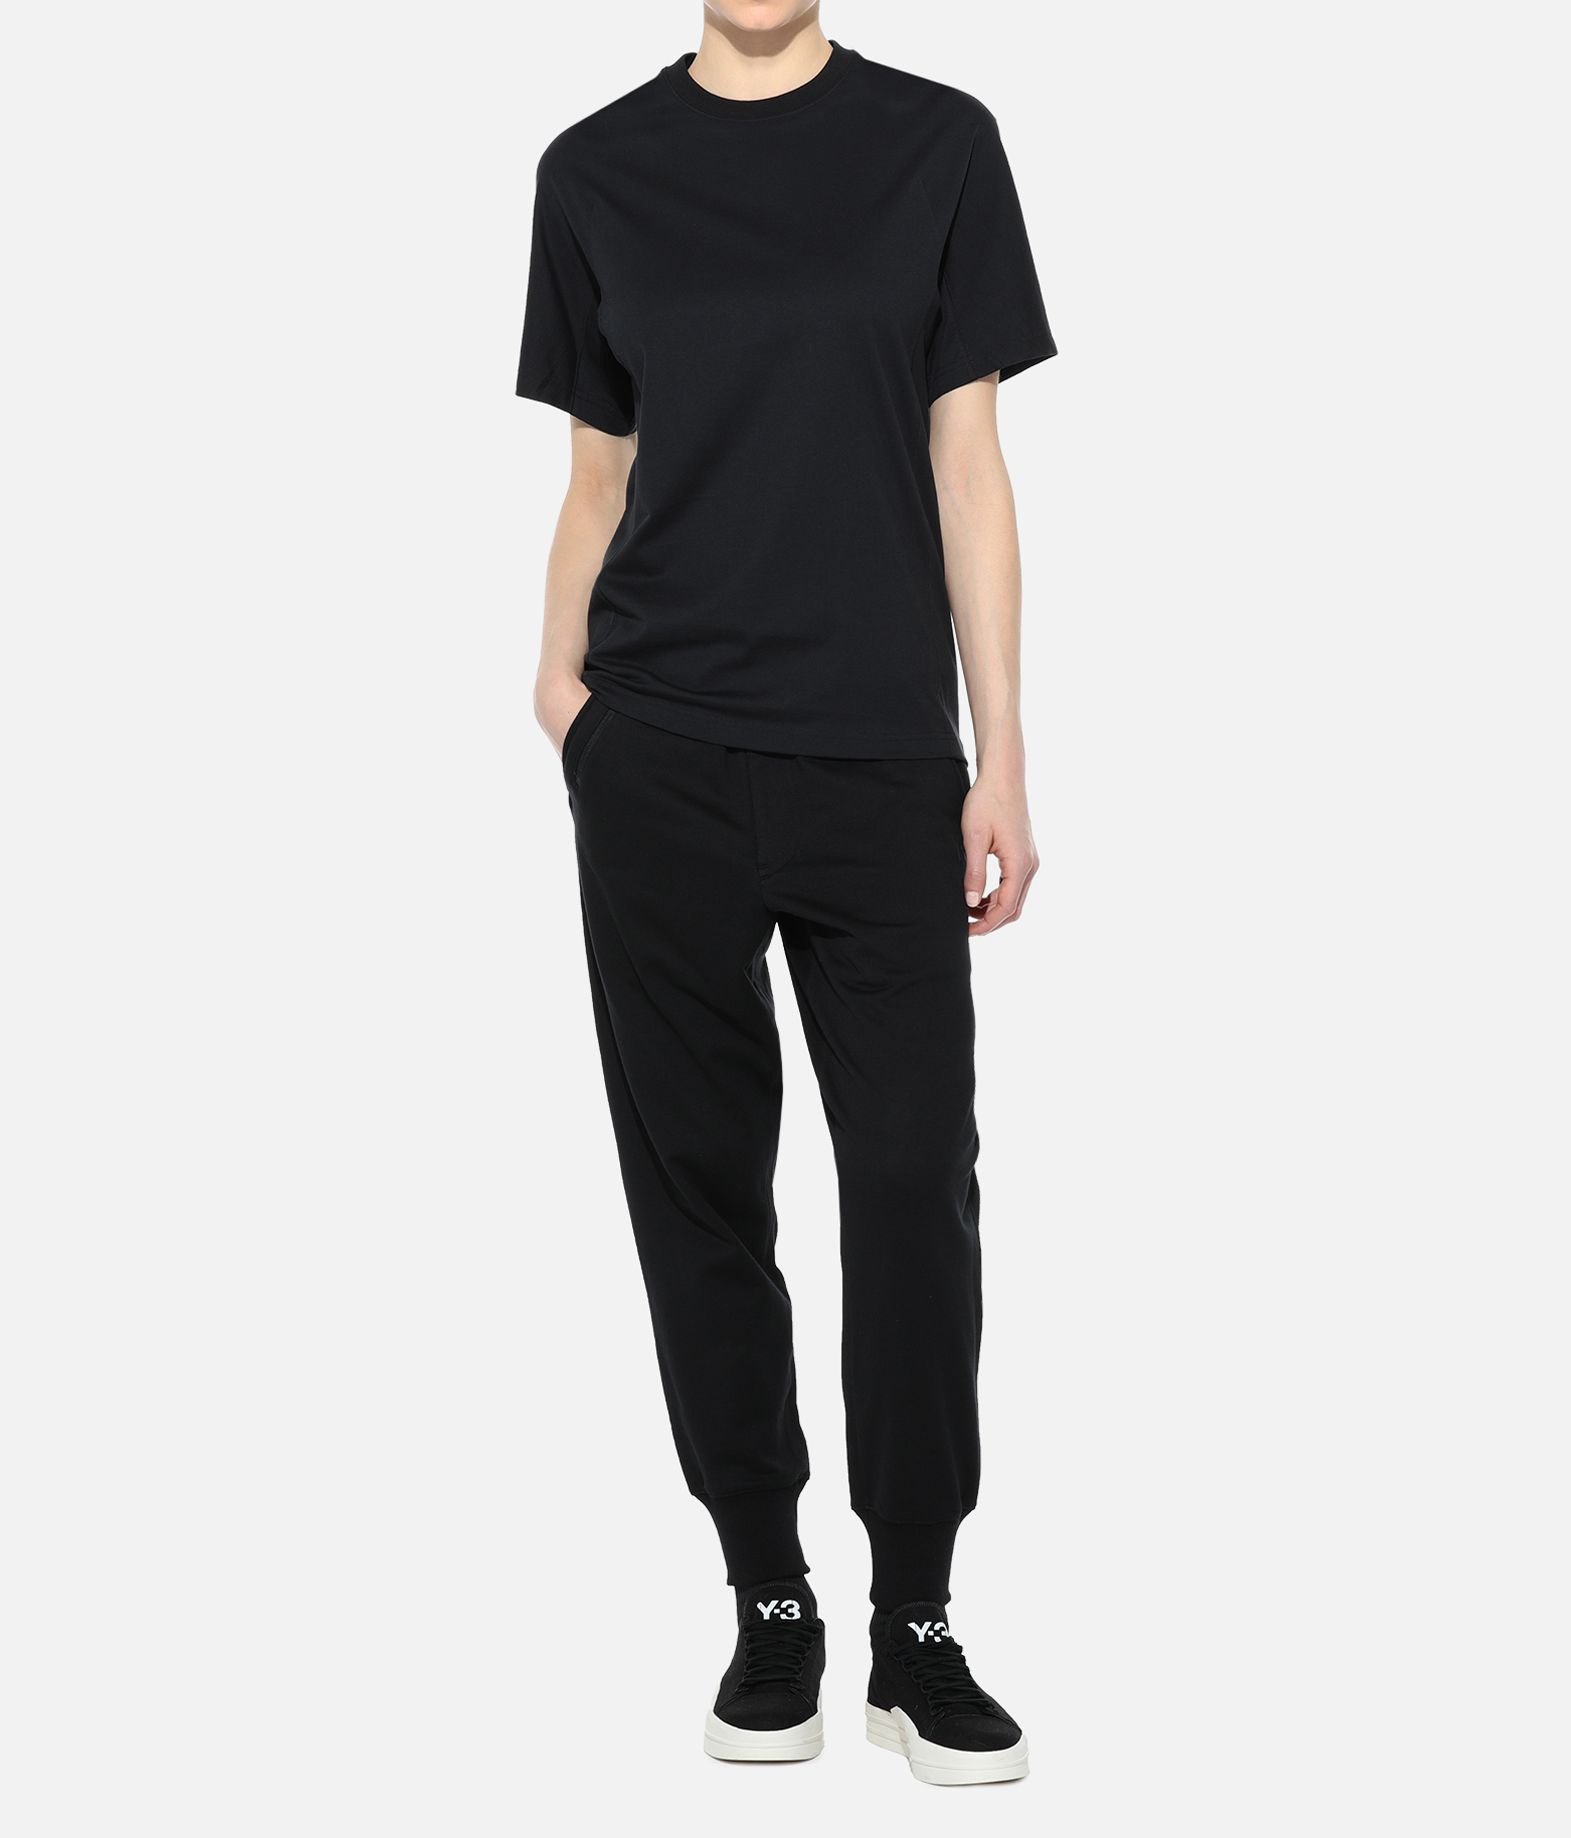 Y-3 Y-3 Classic Crewneck Tee Short sleeve t-shirt Woman a